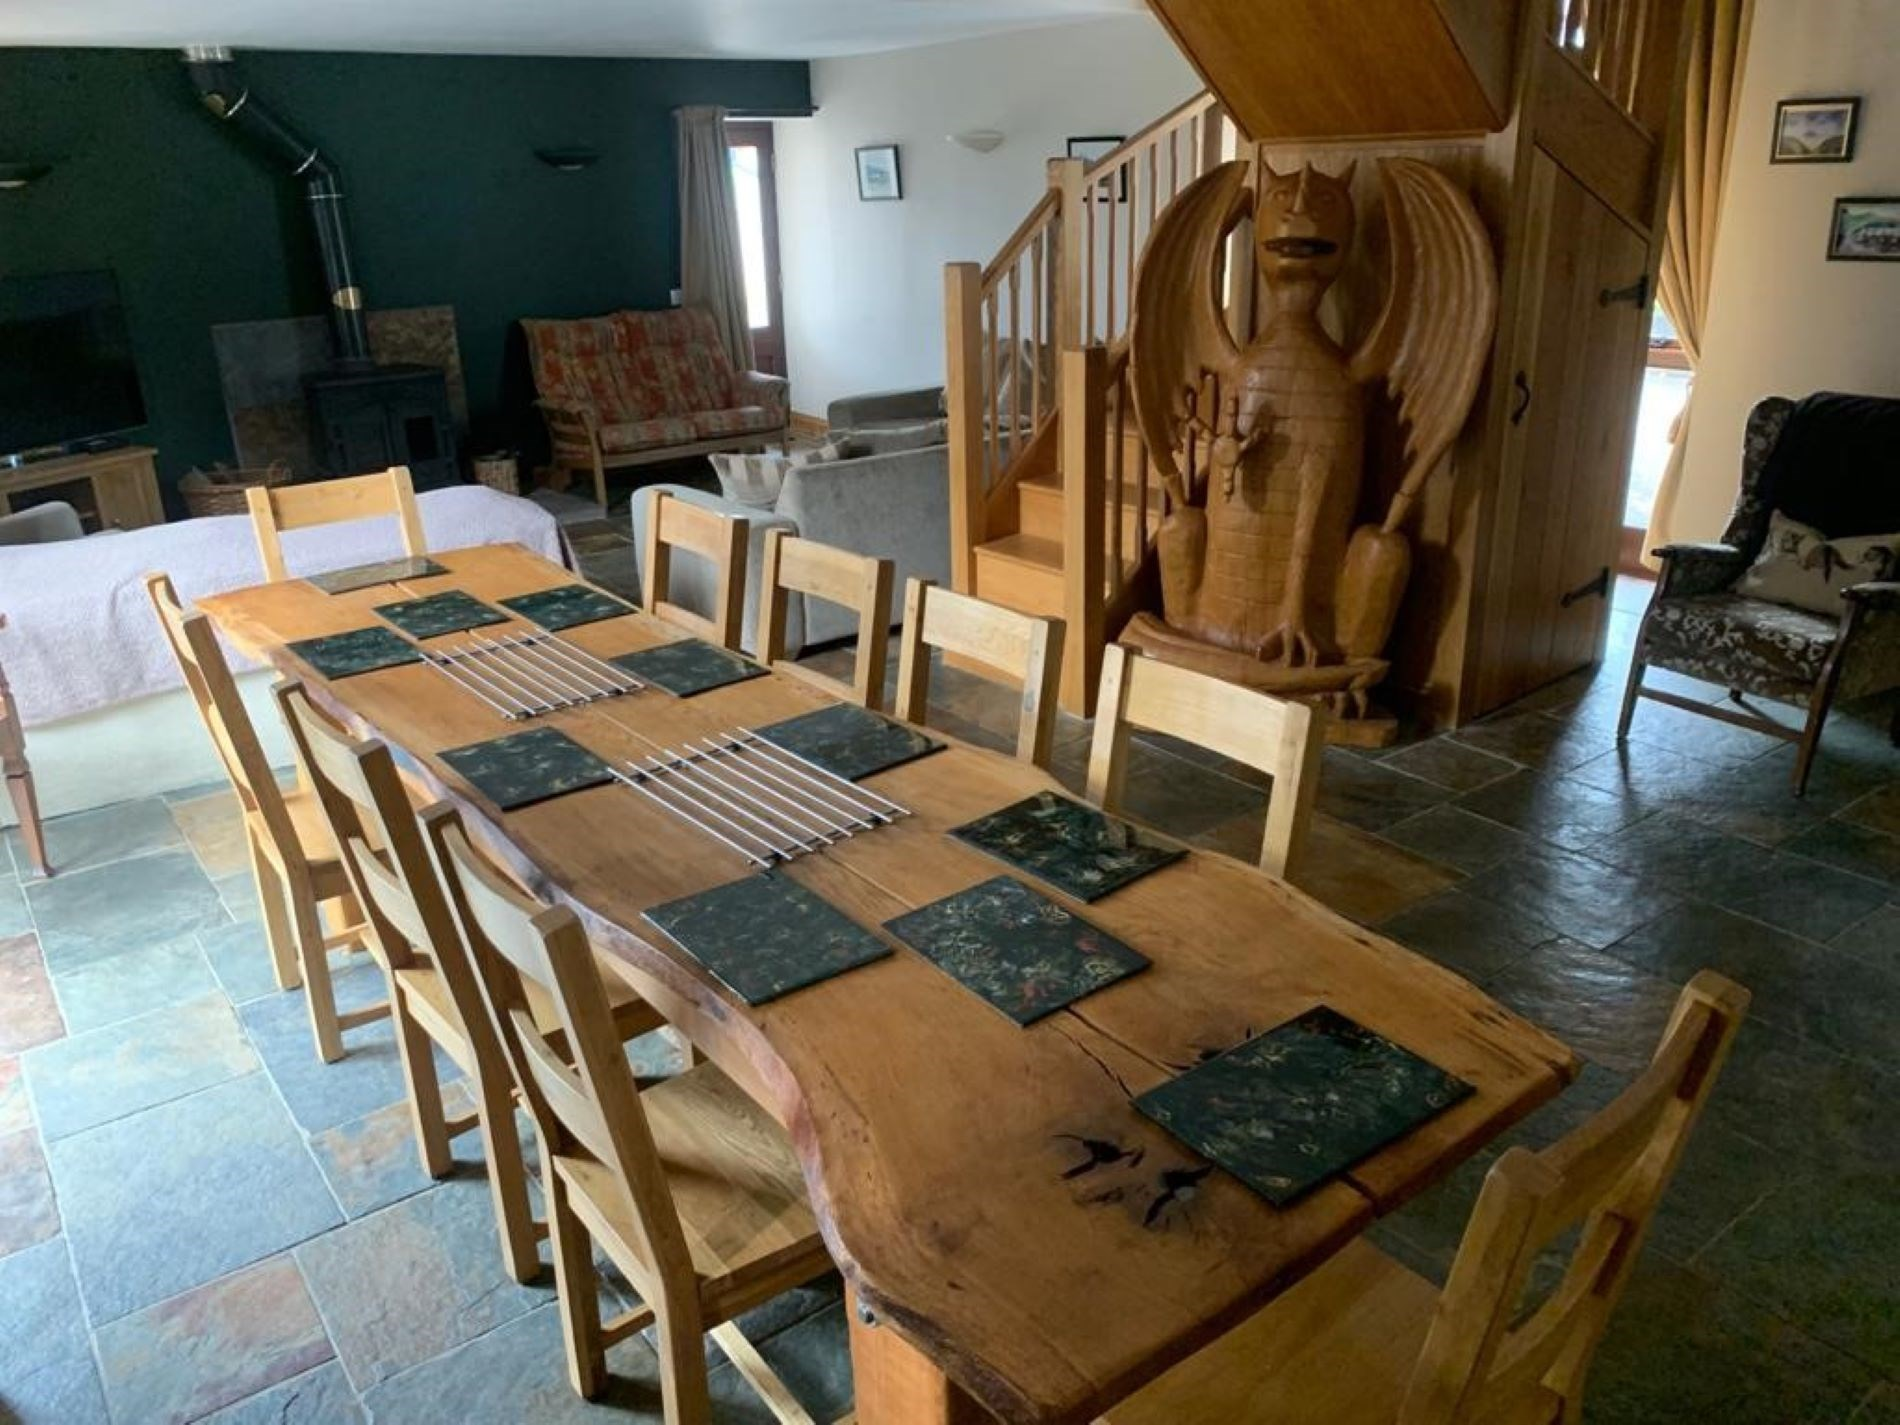 4 Bedroom Barn in Mid Wales, Pembrokeshire and the South